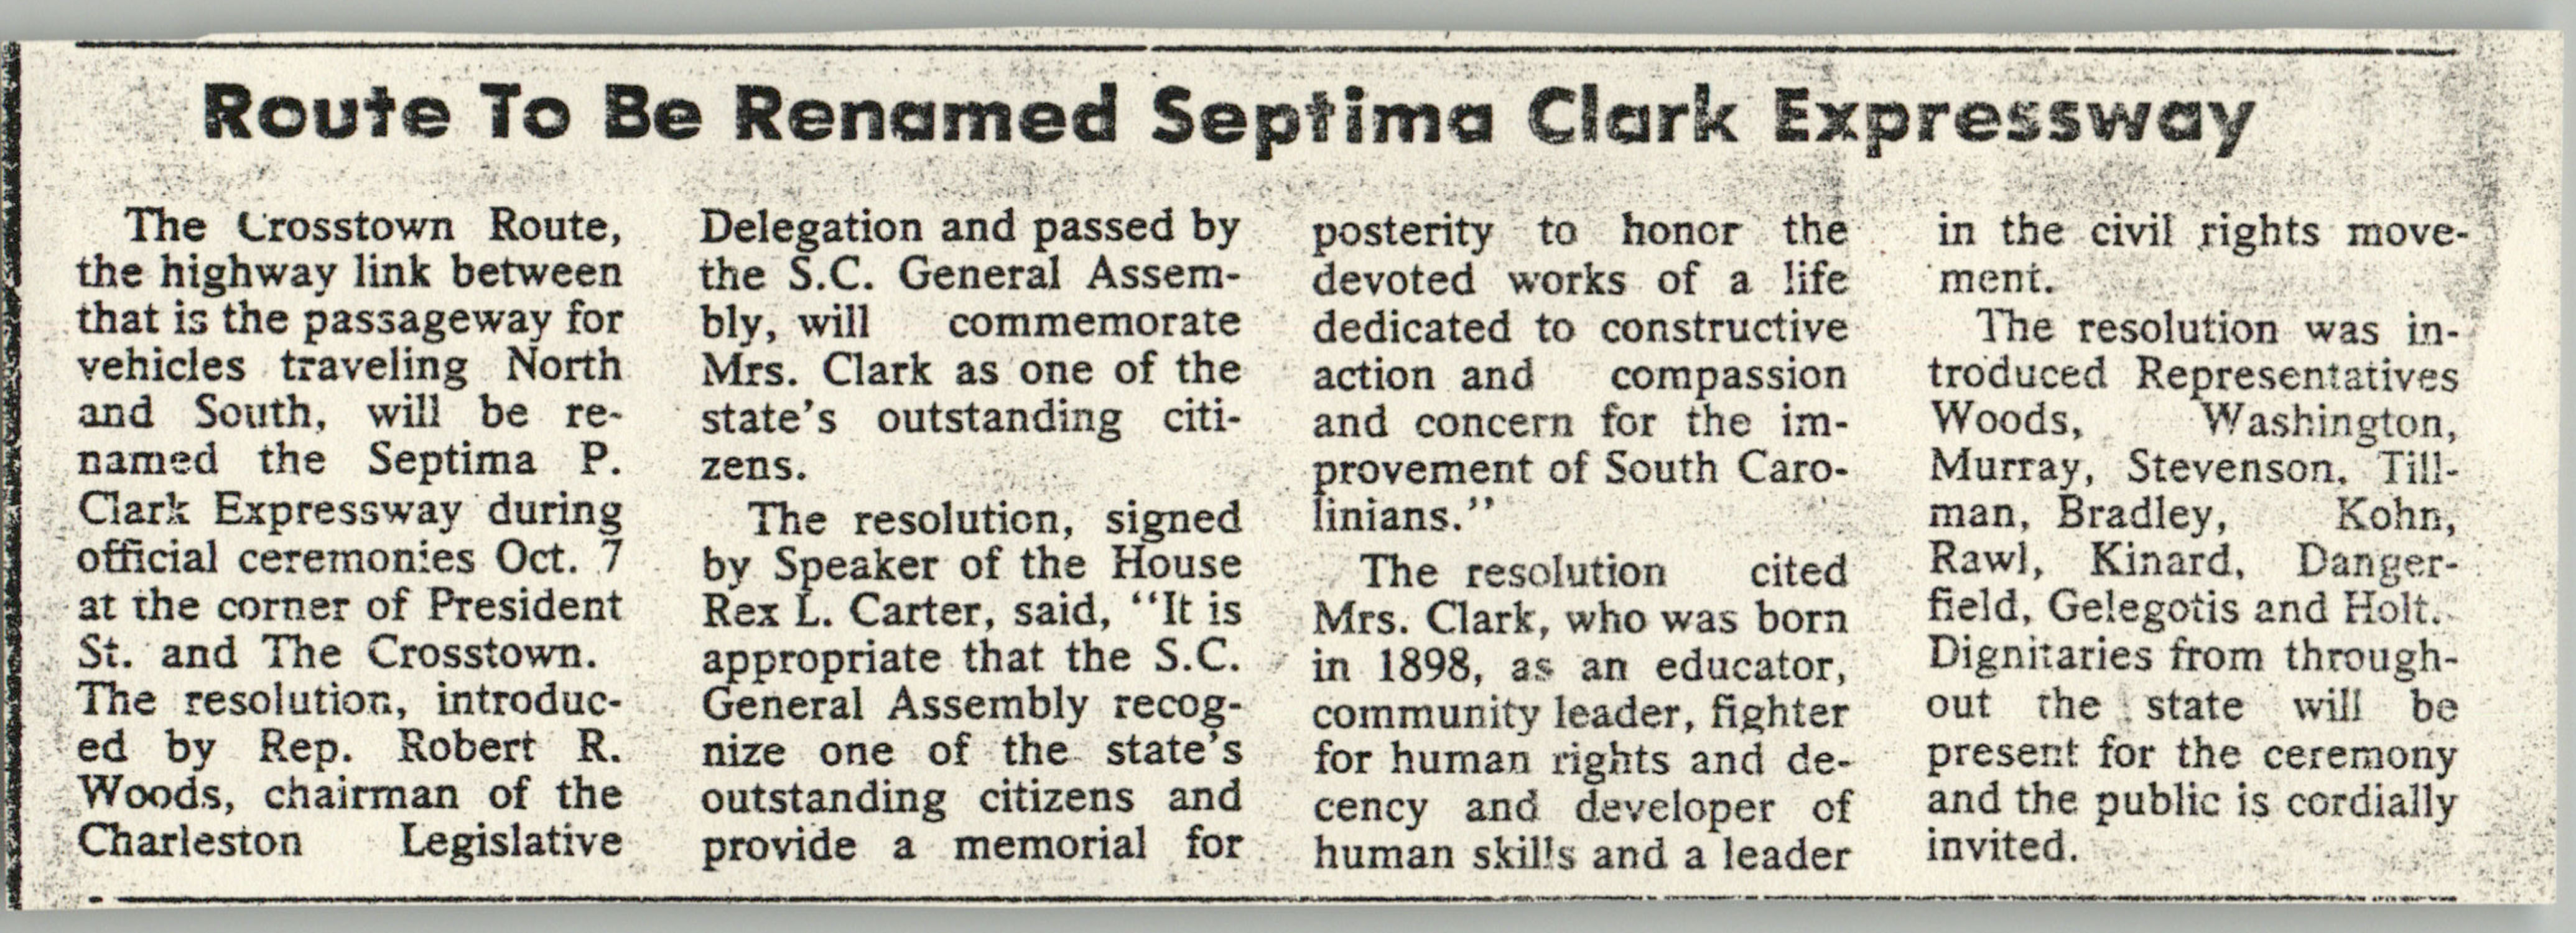 Newspaper Article, Septima Clark Expressway